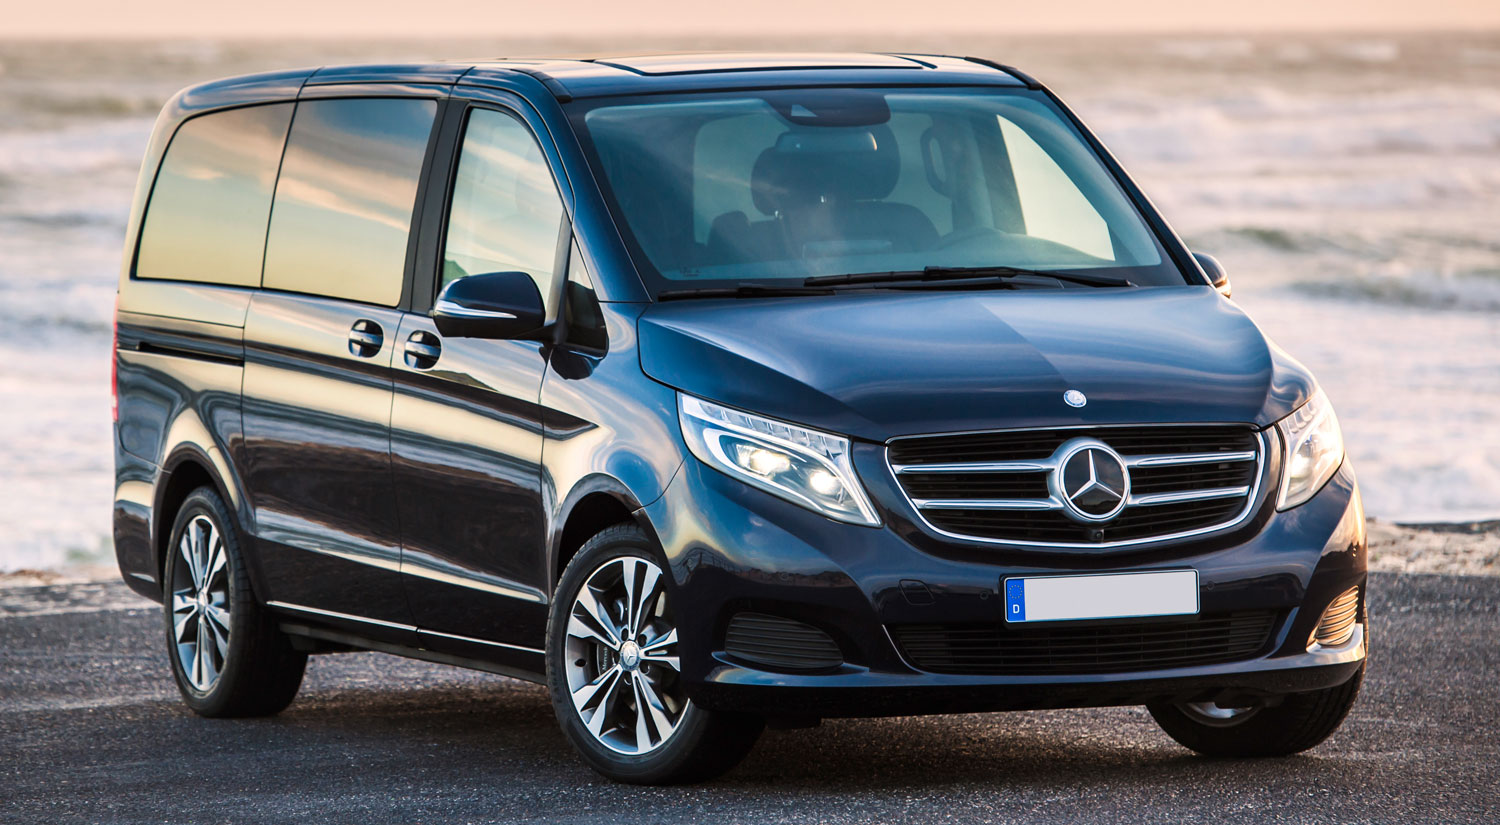 Mercedes benz classe v five stars rentals monte carlo for Where can i rent a mercedes benz